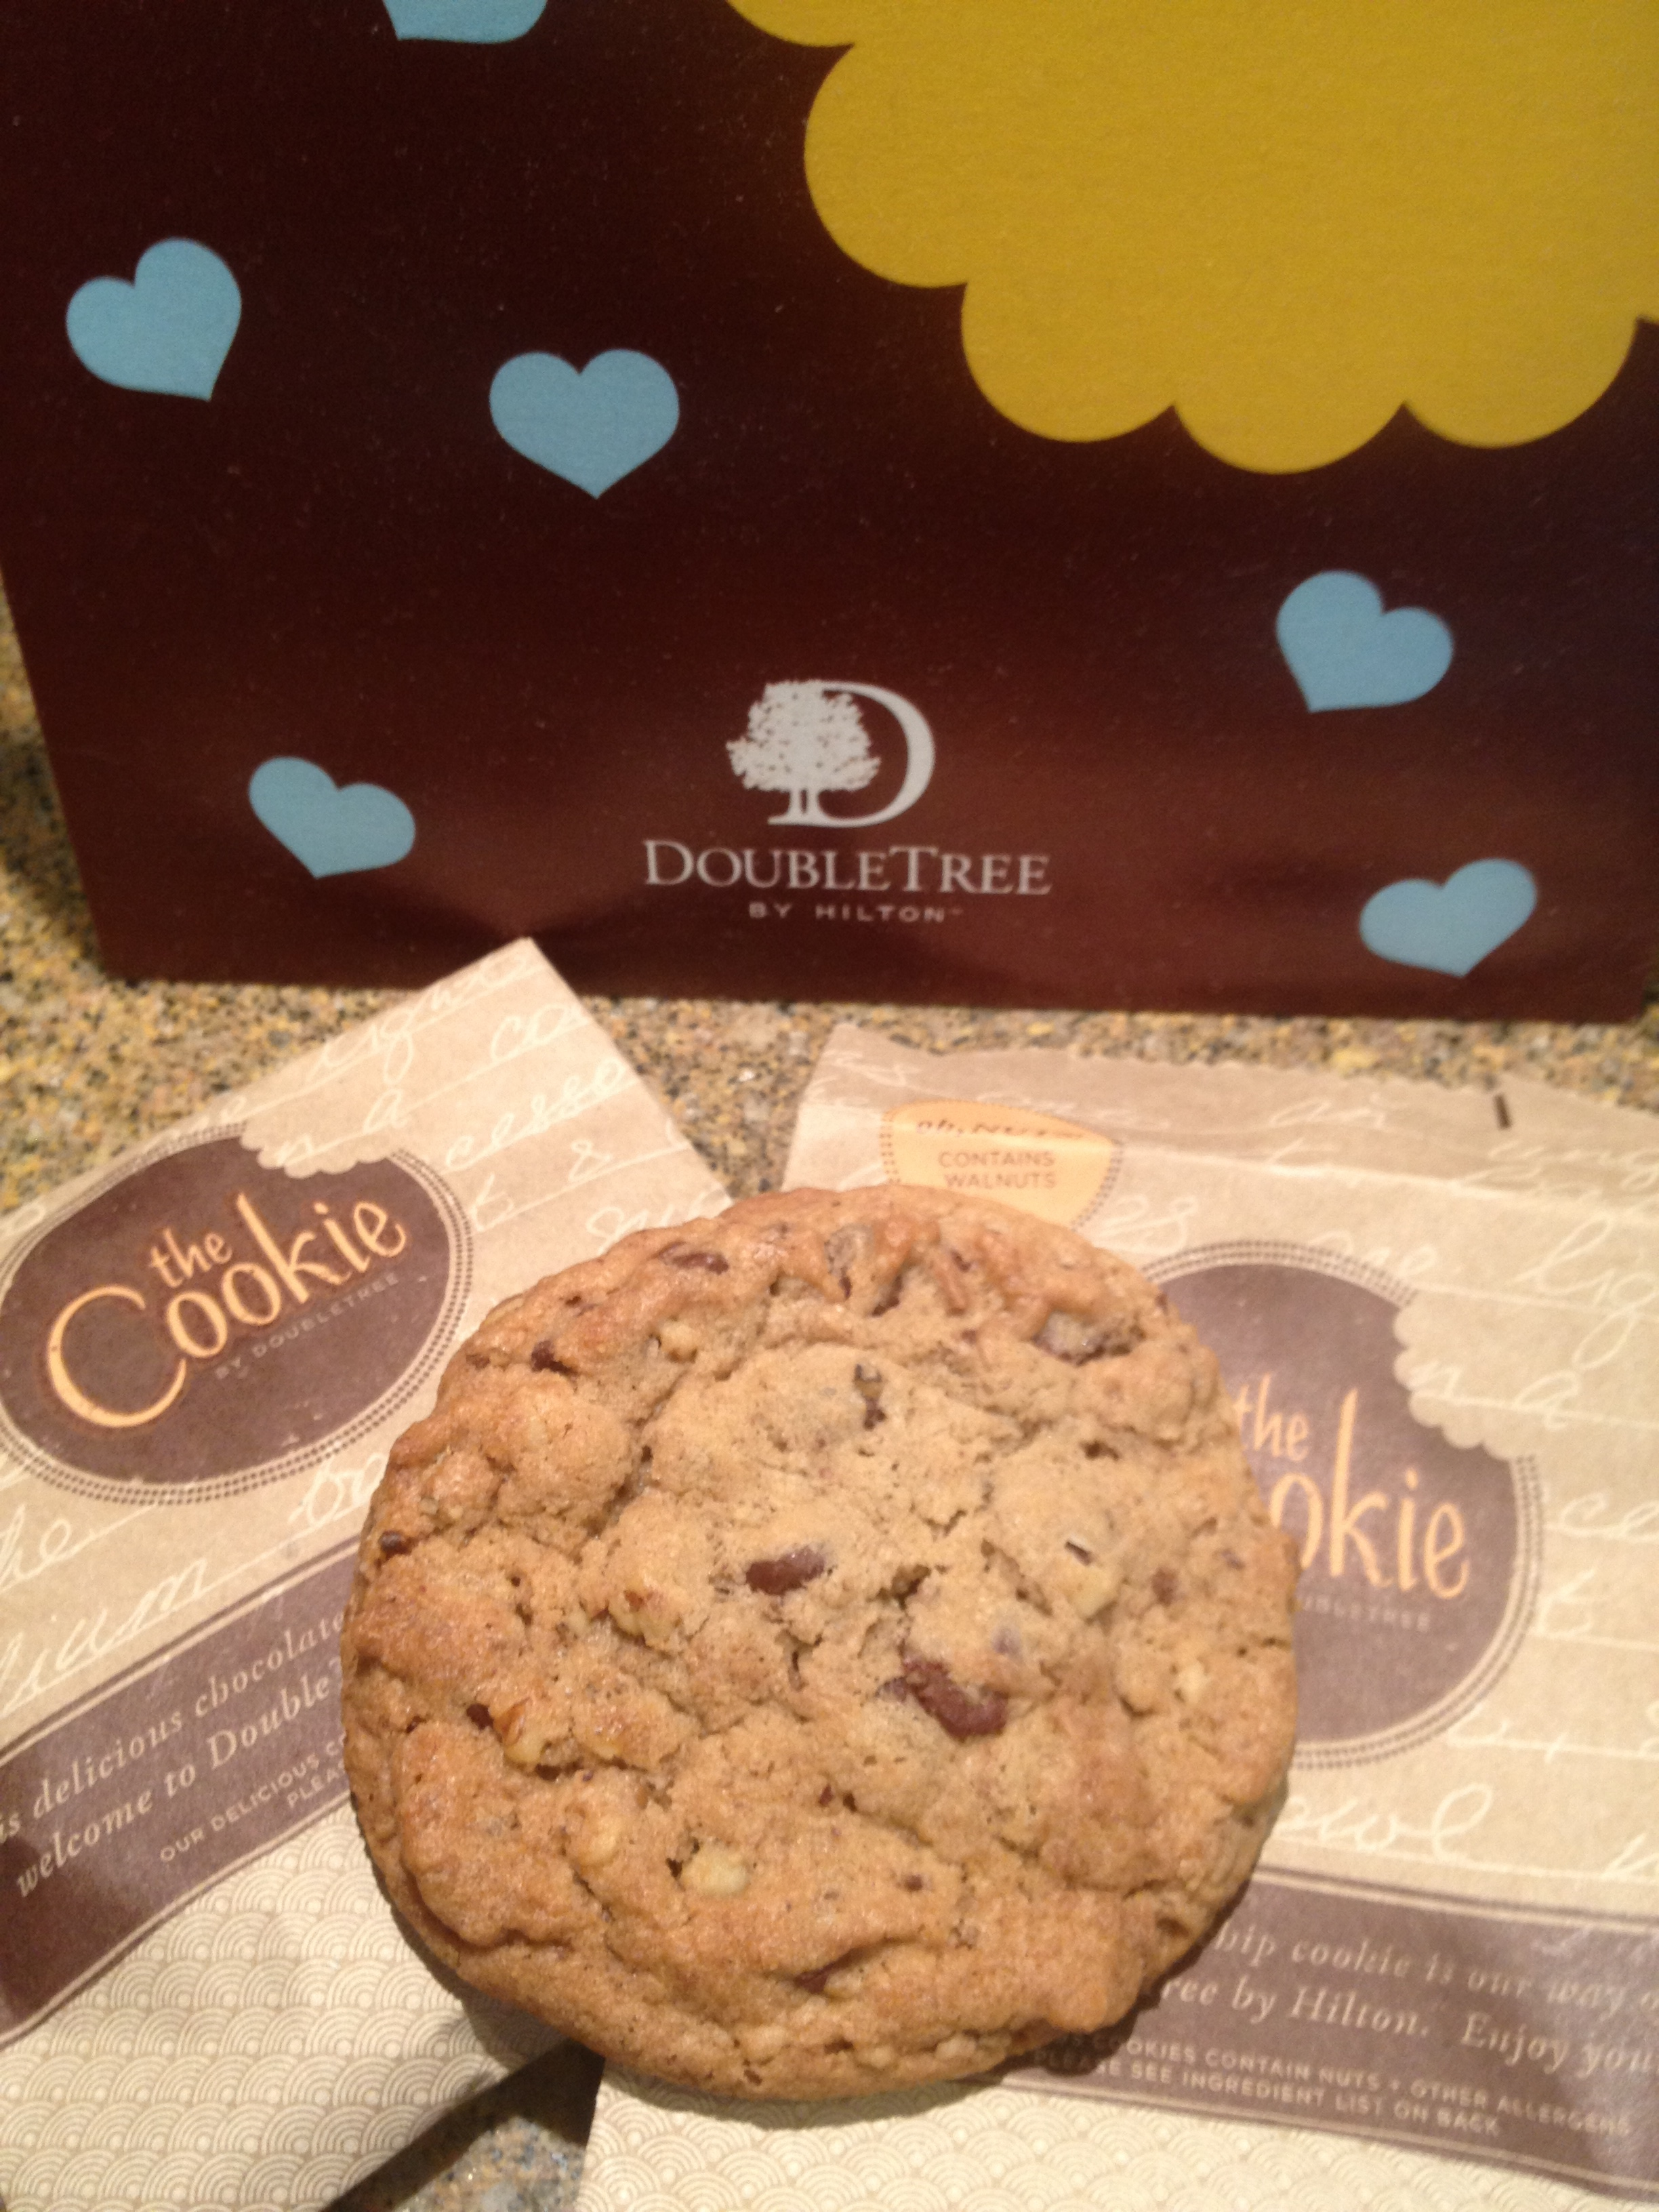 The Secret To Getting Free Doubletree Cookies Points